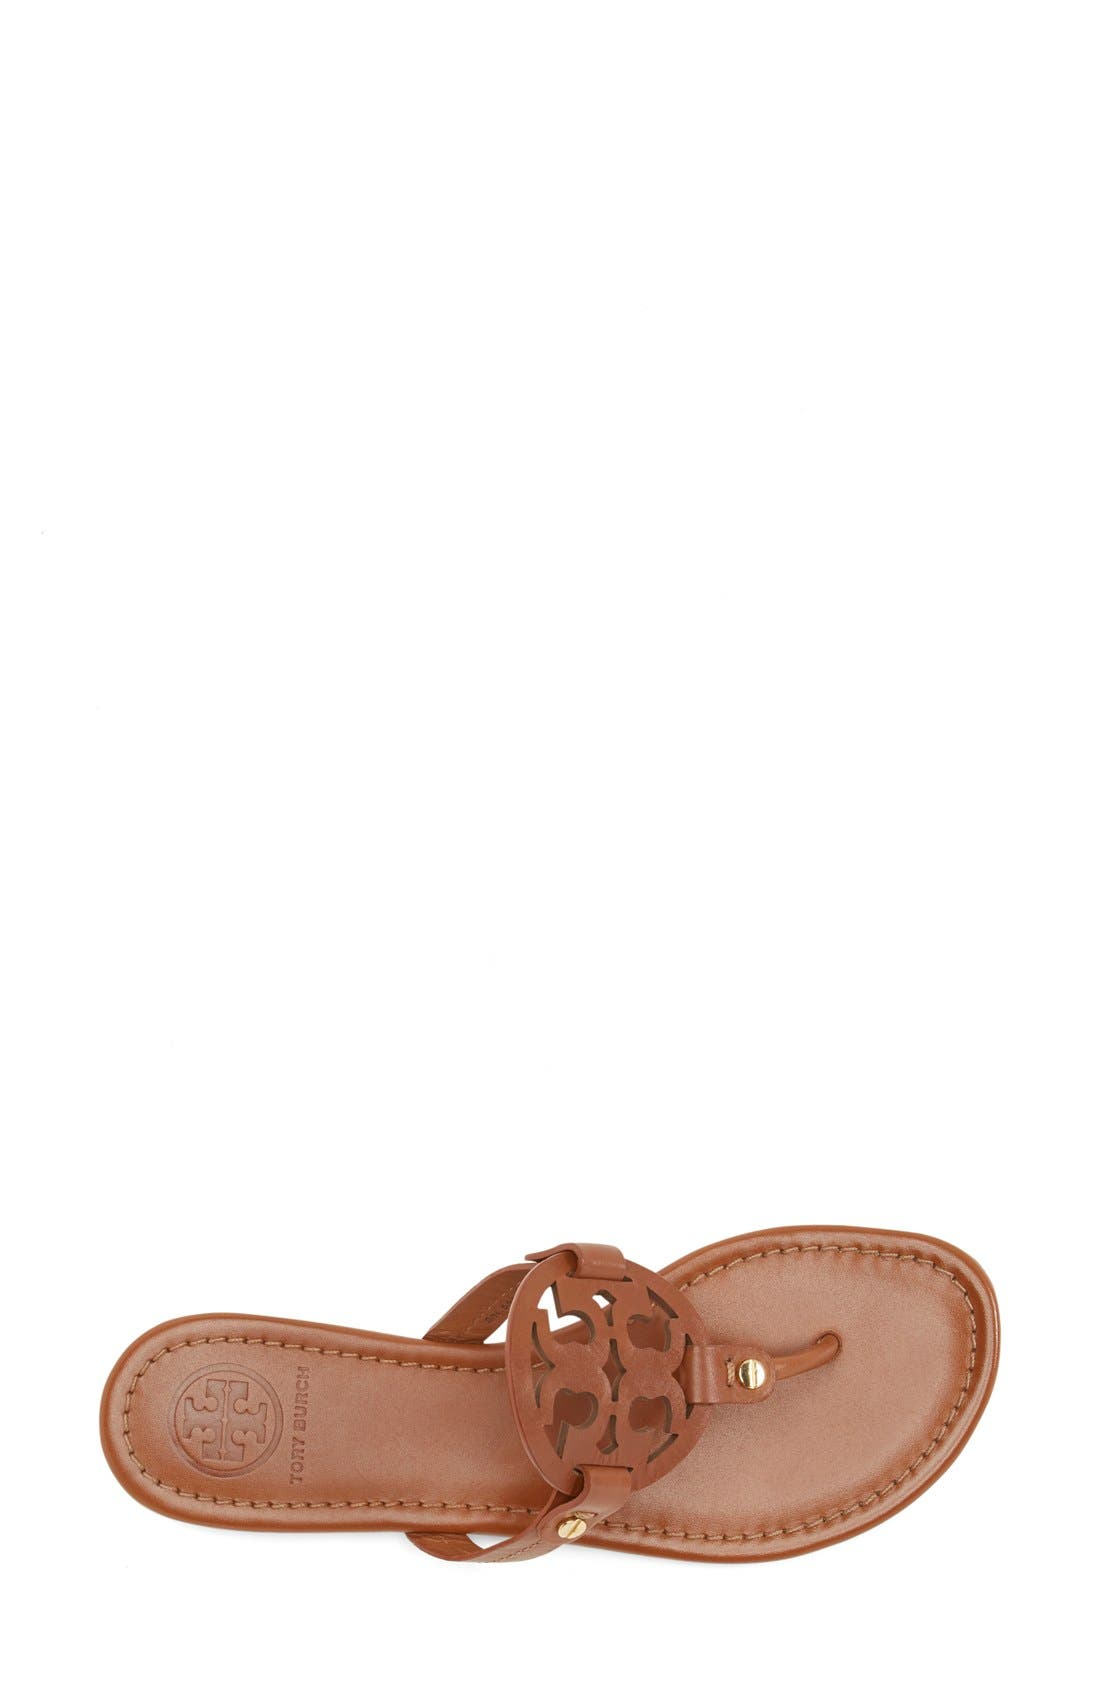 Alternate Image 4  - Tory Burch 'Miller' Flip Flop (Women)